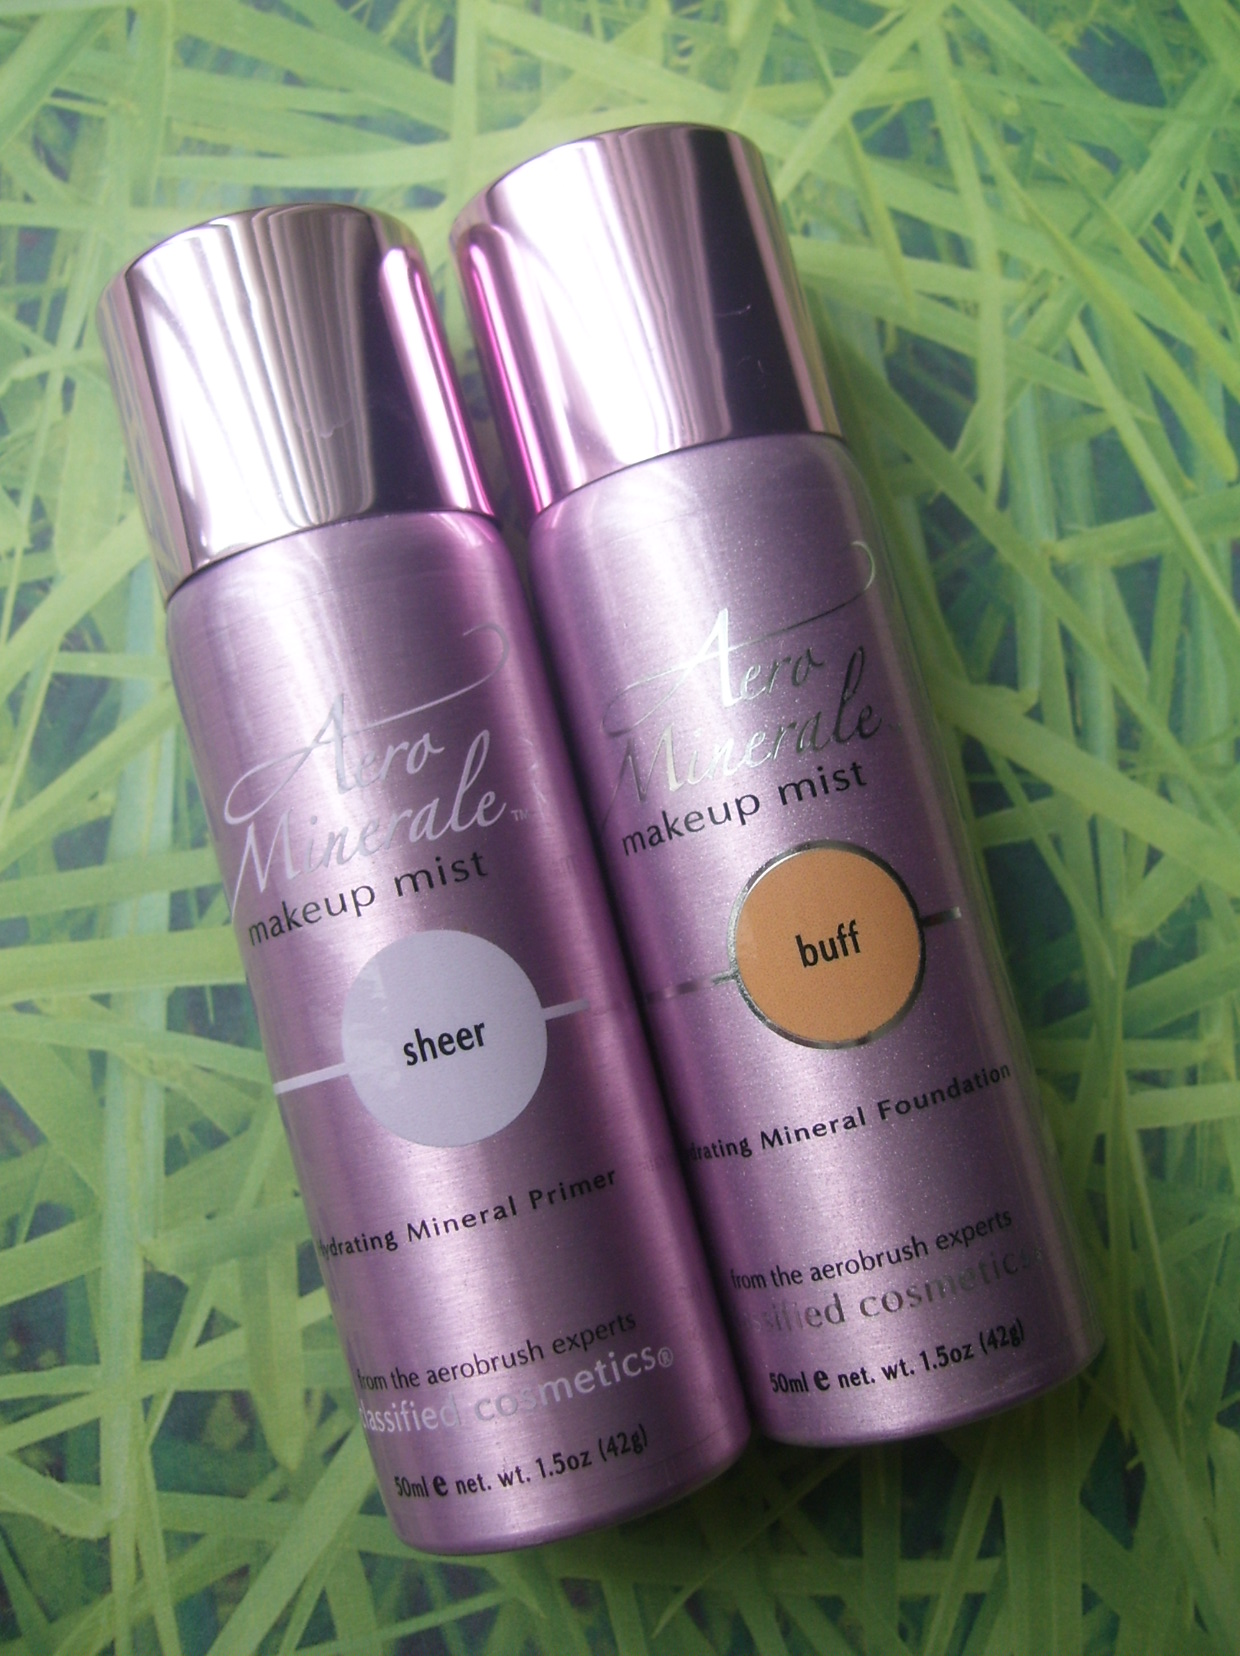 Review:  Aero Minerale Makeup Mist Foundation & Primer